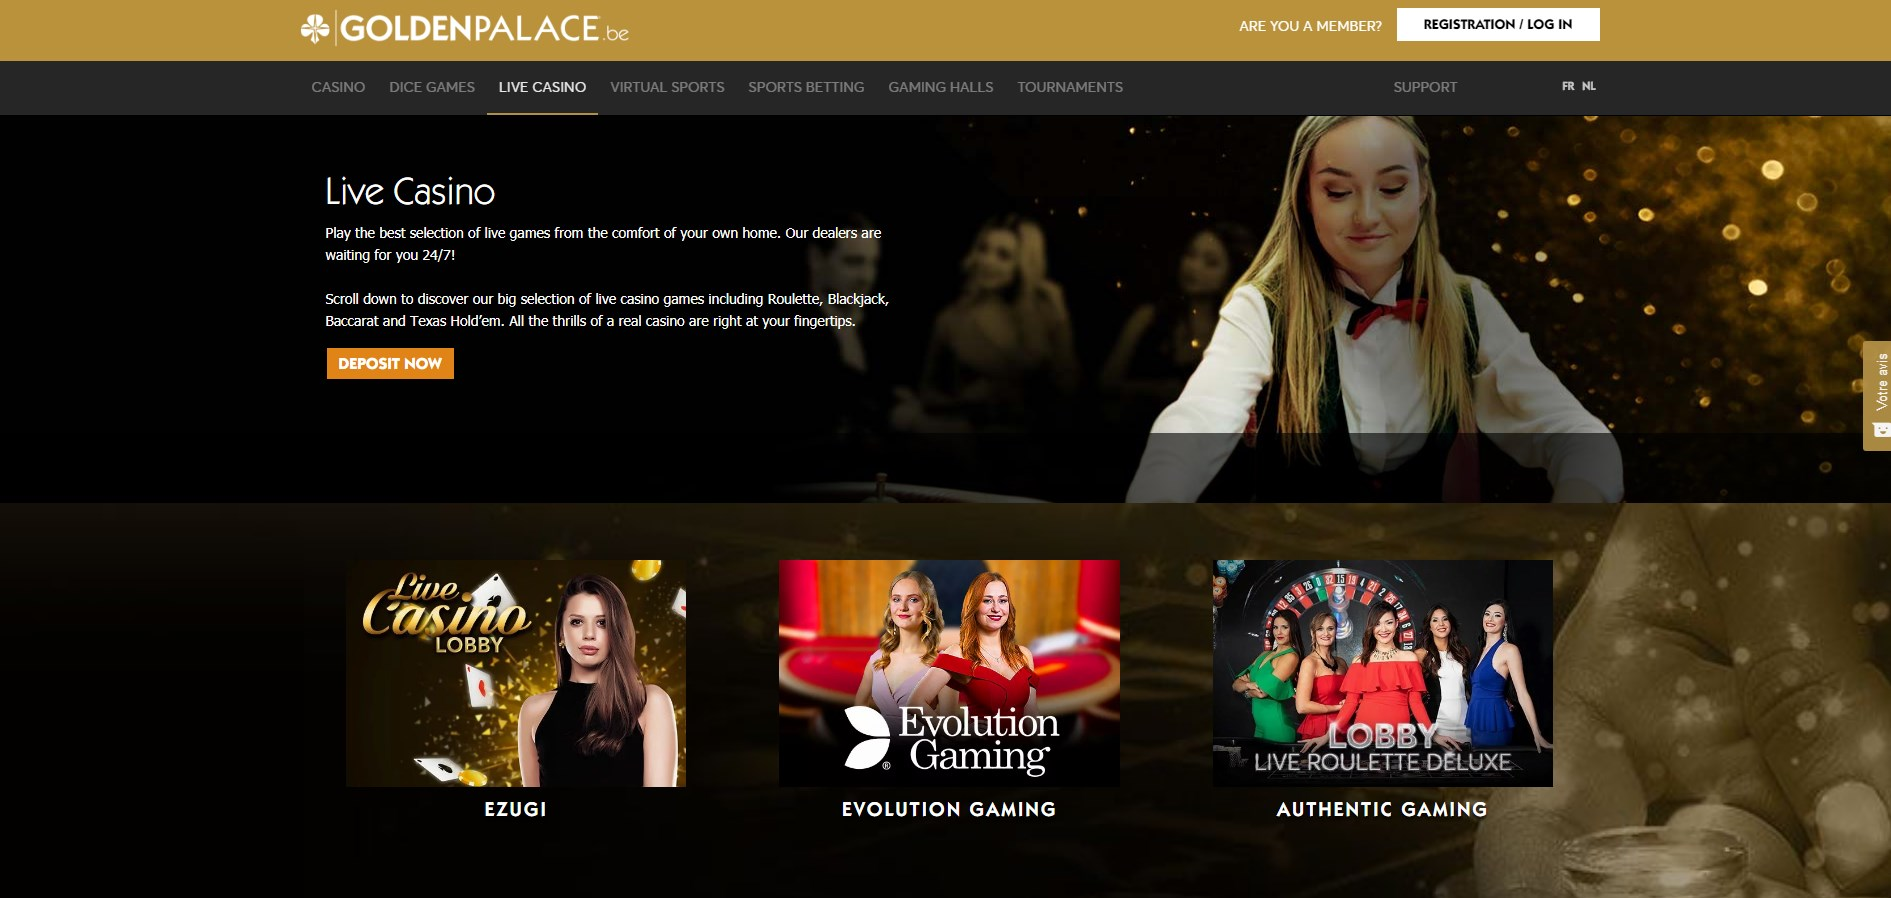 Golden Palace (BE) Casino Live Dealer Games